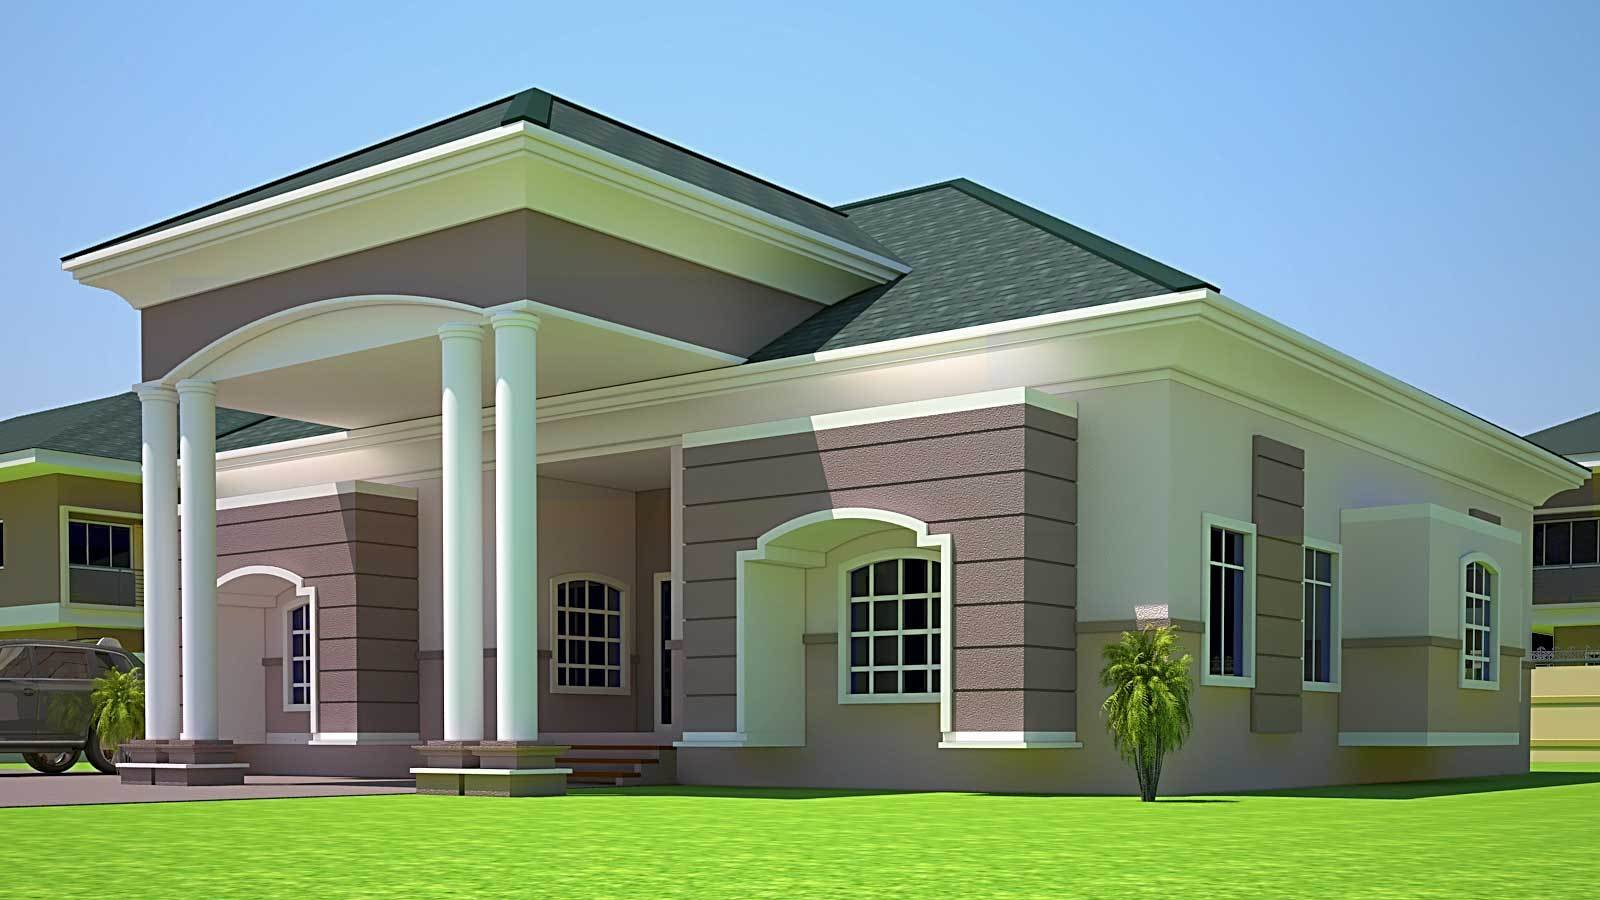 Best House Plans Ghana Holla 4 Bedroom House Plan In Ghana With Pictures